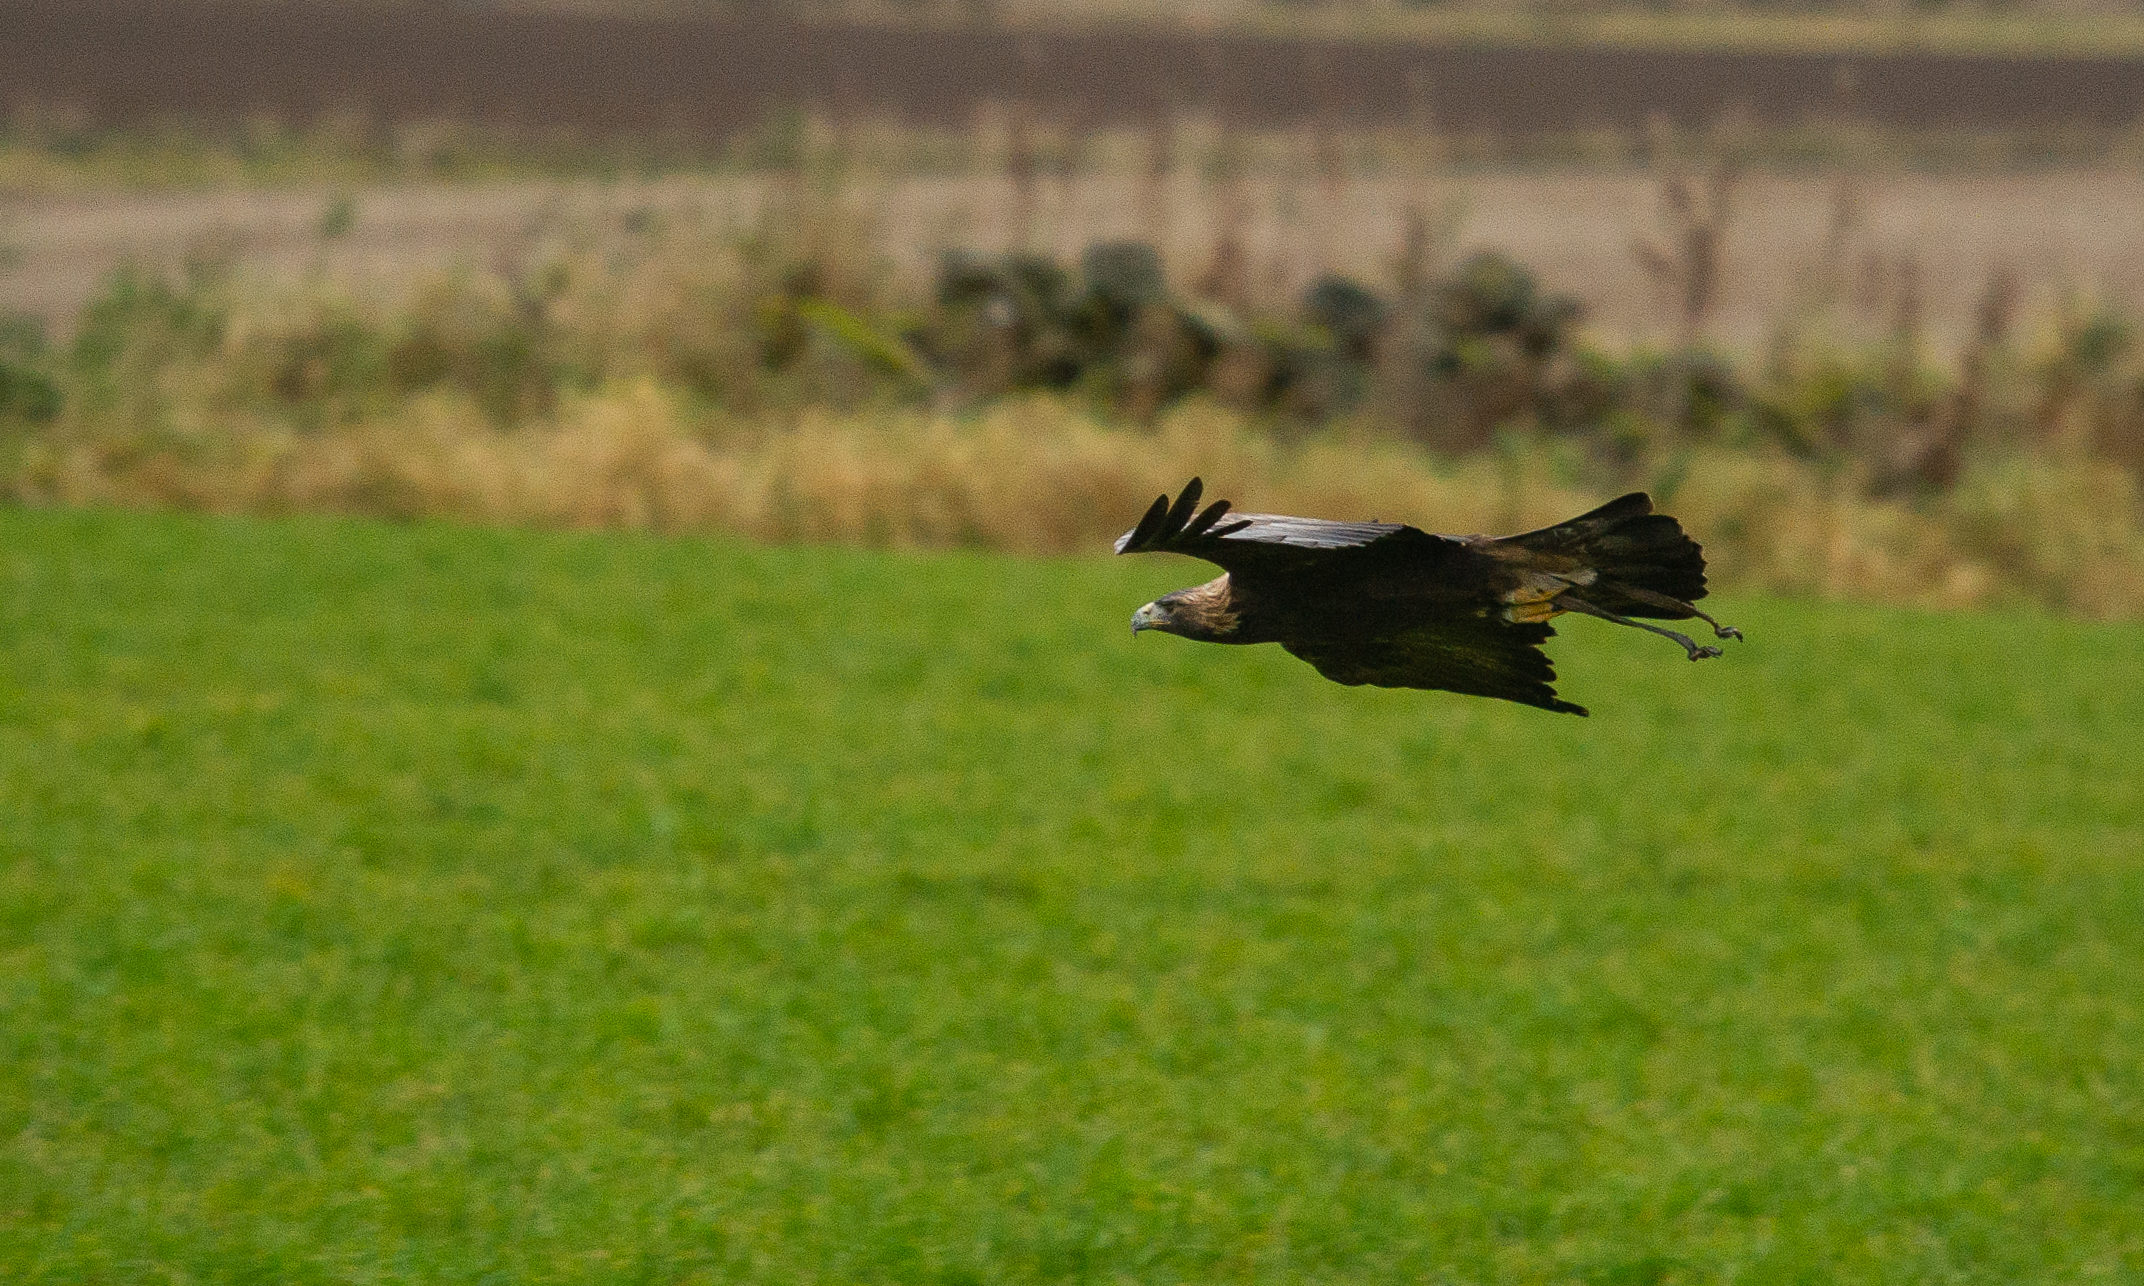 The calls come after it was announced another golden eagle has gone missing in Perthshire.